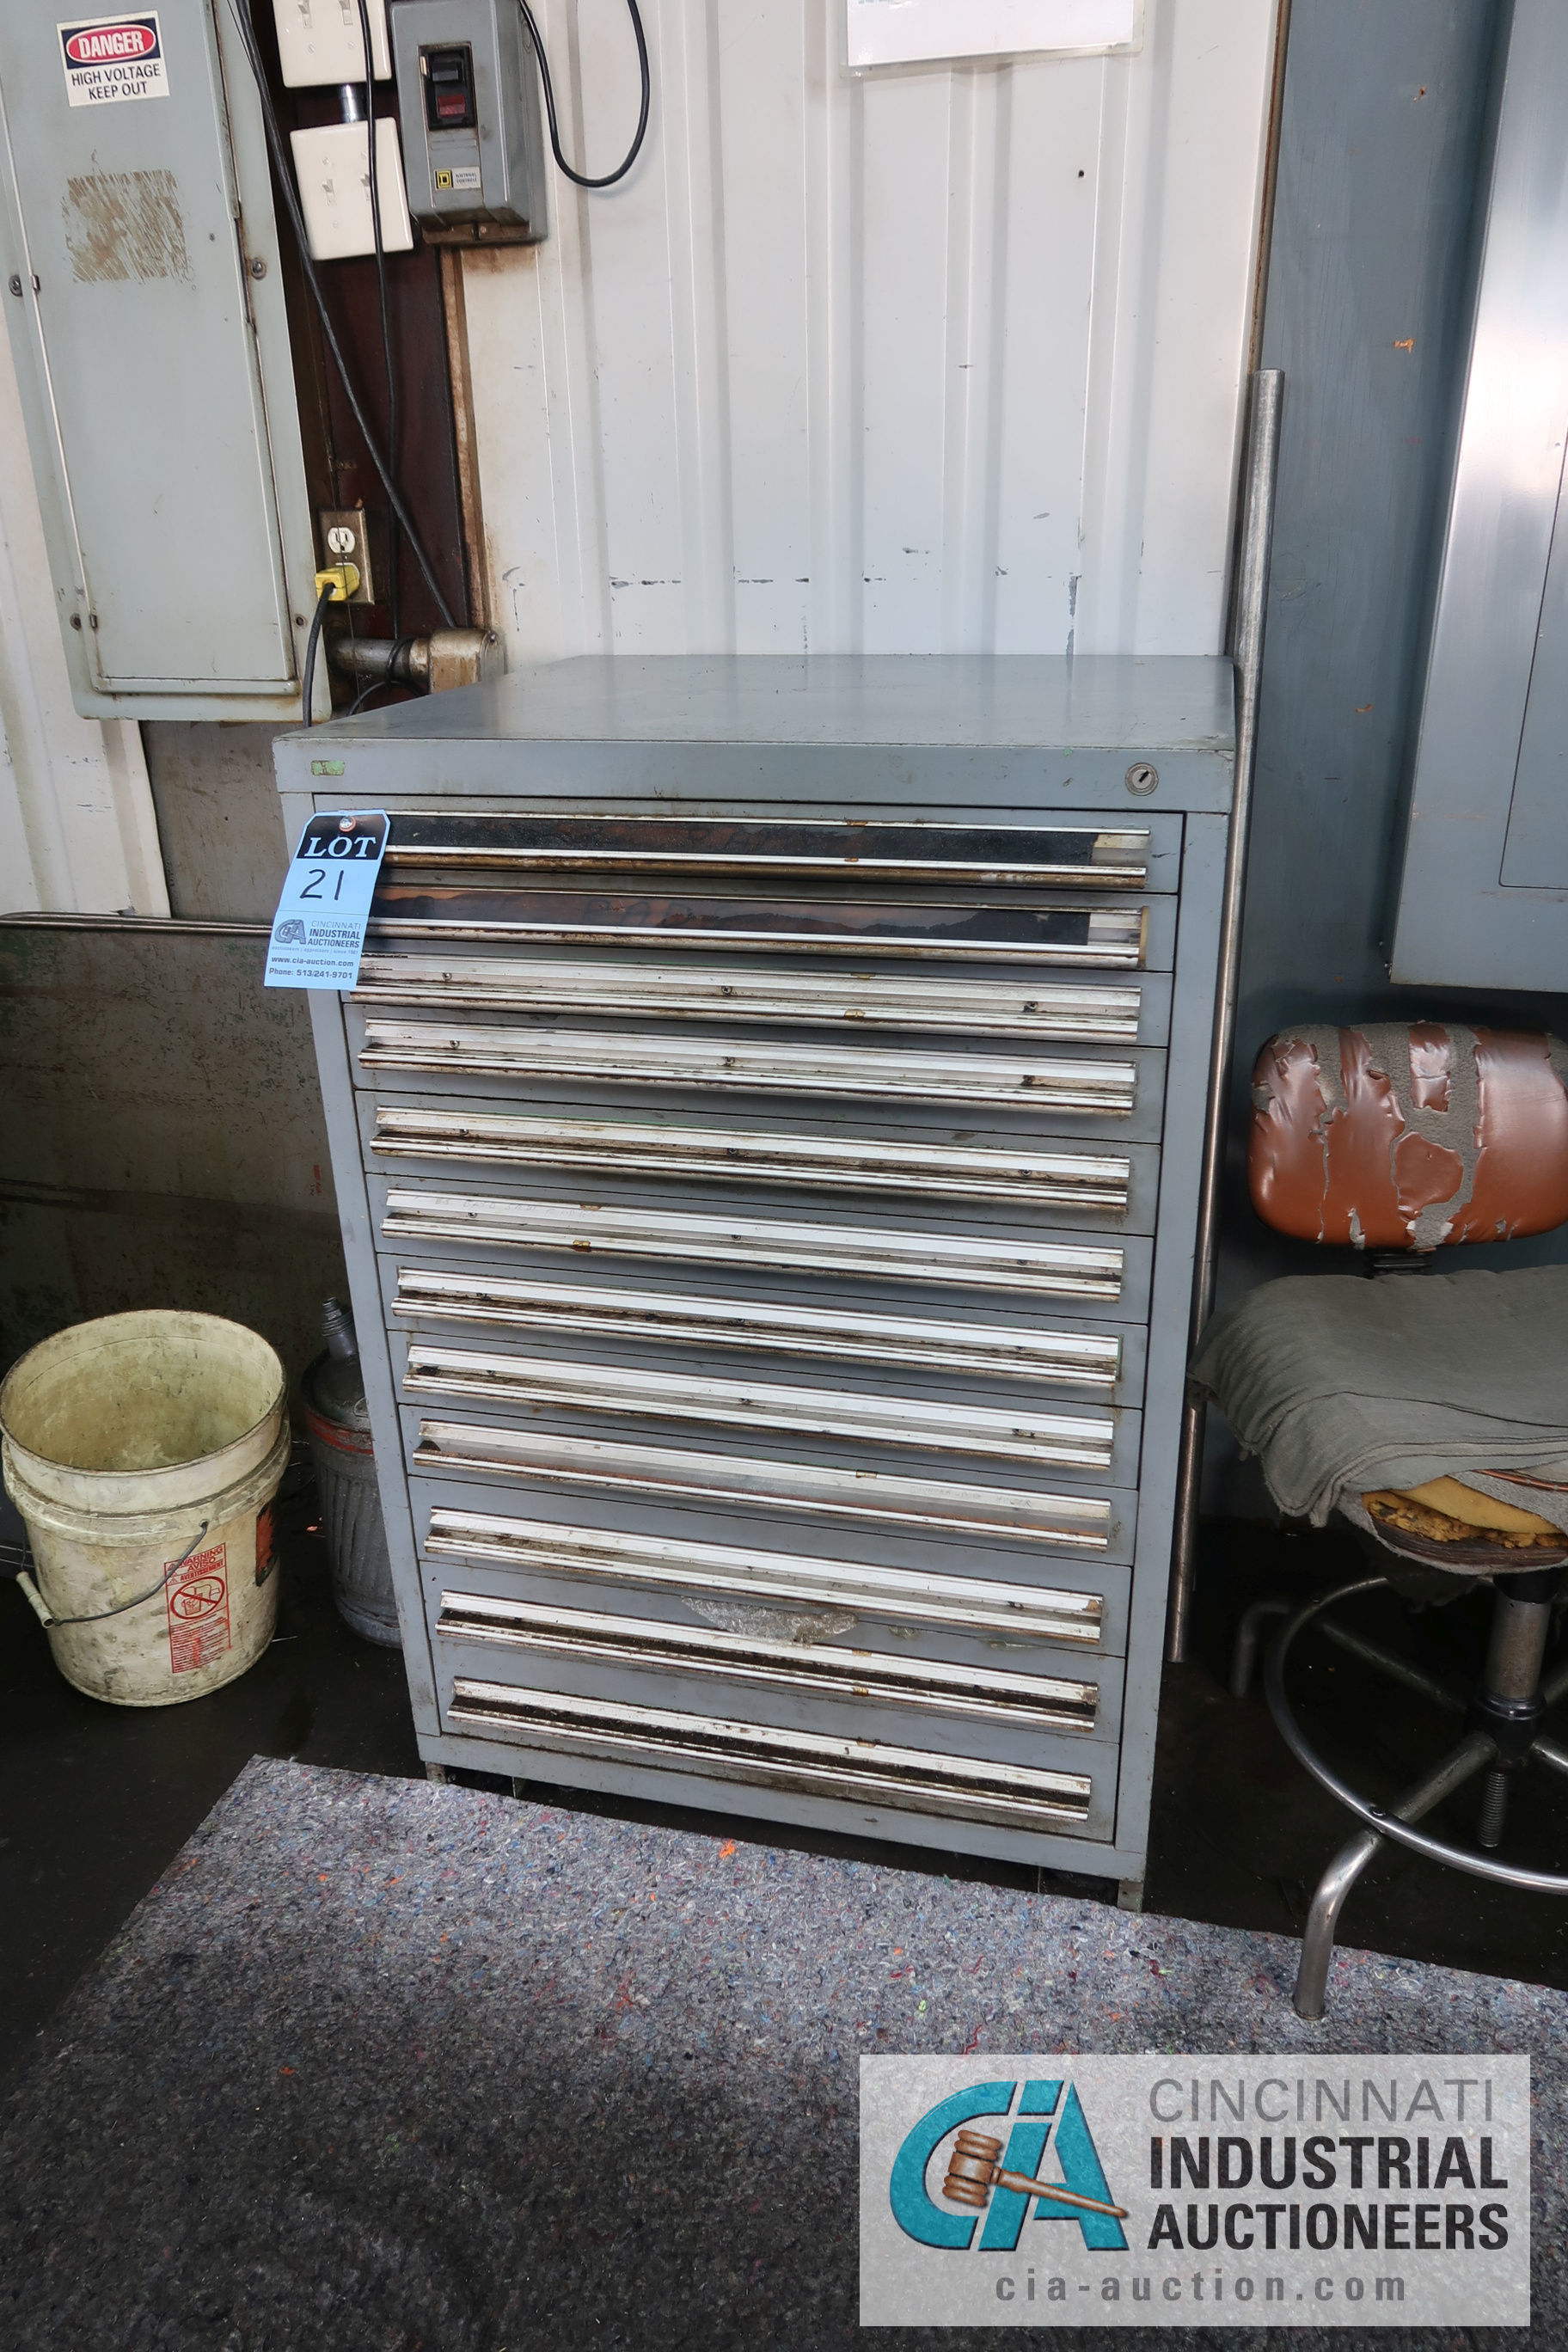 Lot 21 - (LOT) MISCELLANEOUS DAVENPORT TOOLING WITH 12-DRAWER LISTA STYLE TOOL CABINET